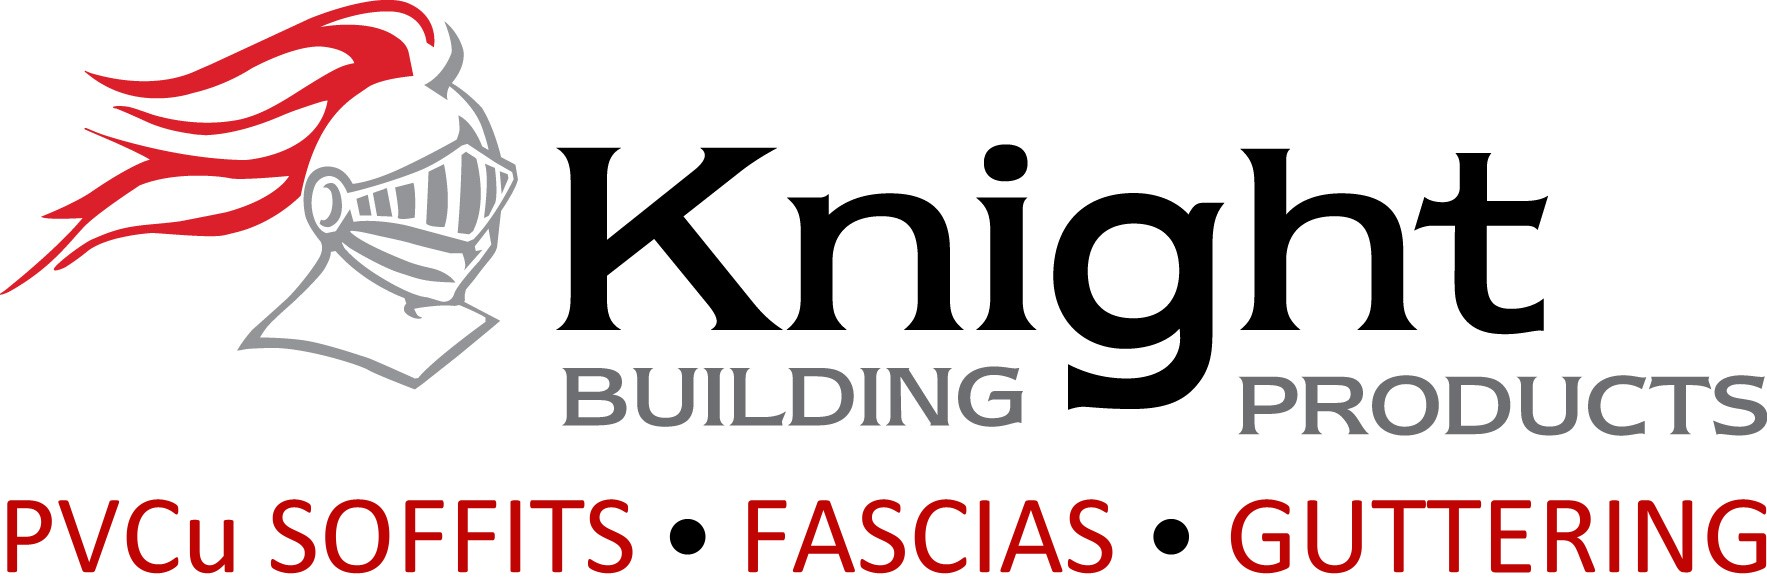 Knight Building Products Logo